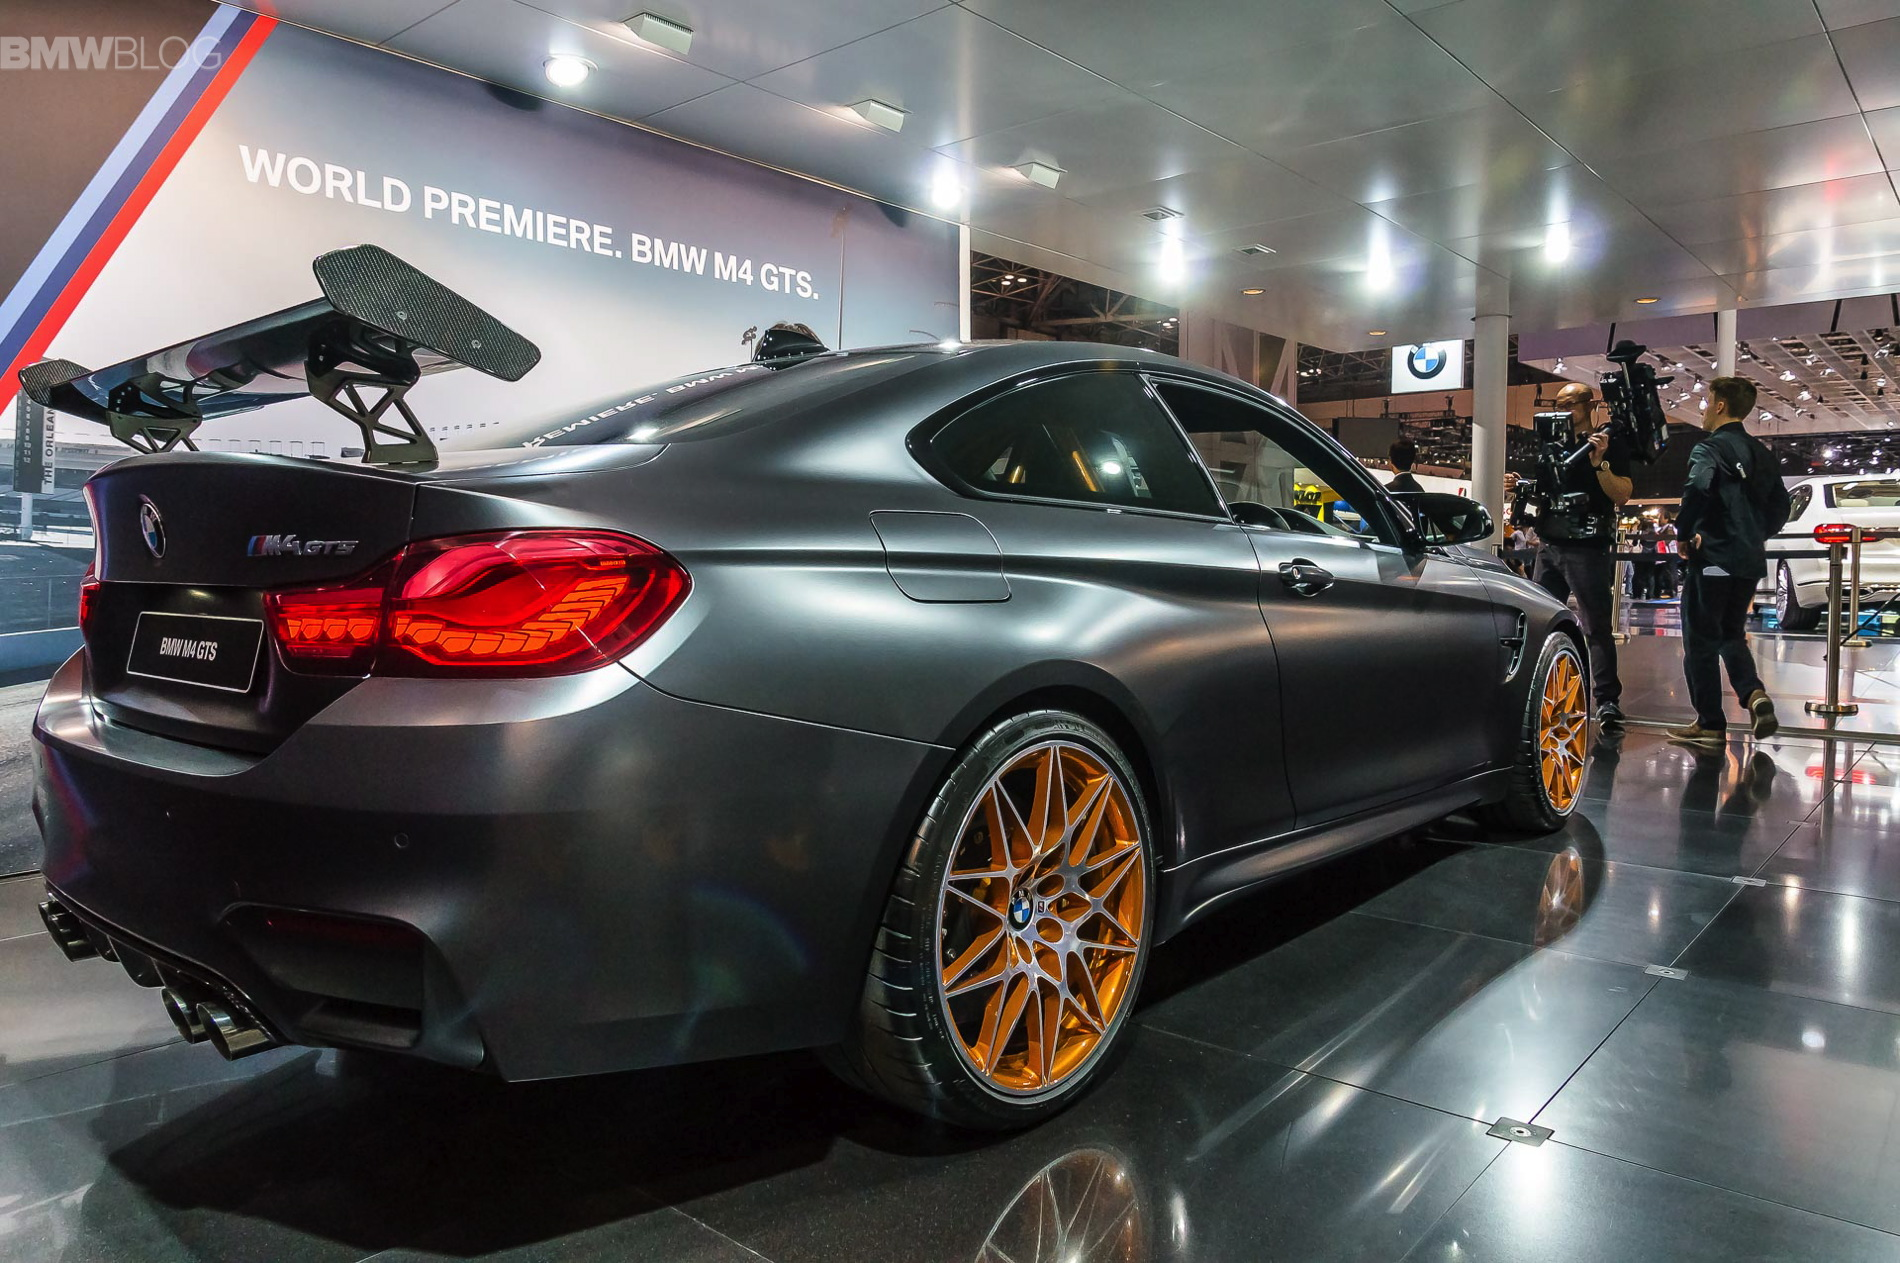 Very Best Sports Car Wallpaper Bmw M4 Gts Makes Debut At 2015 Tokyo Motor Show